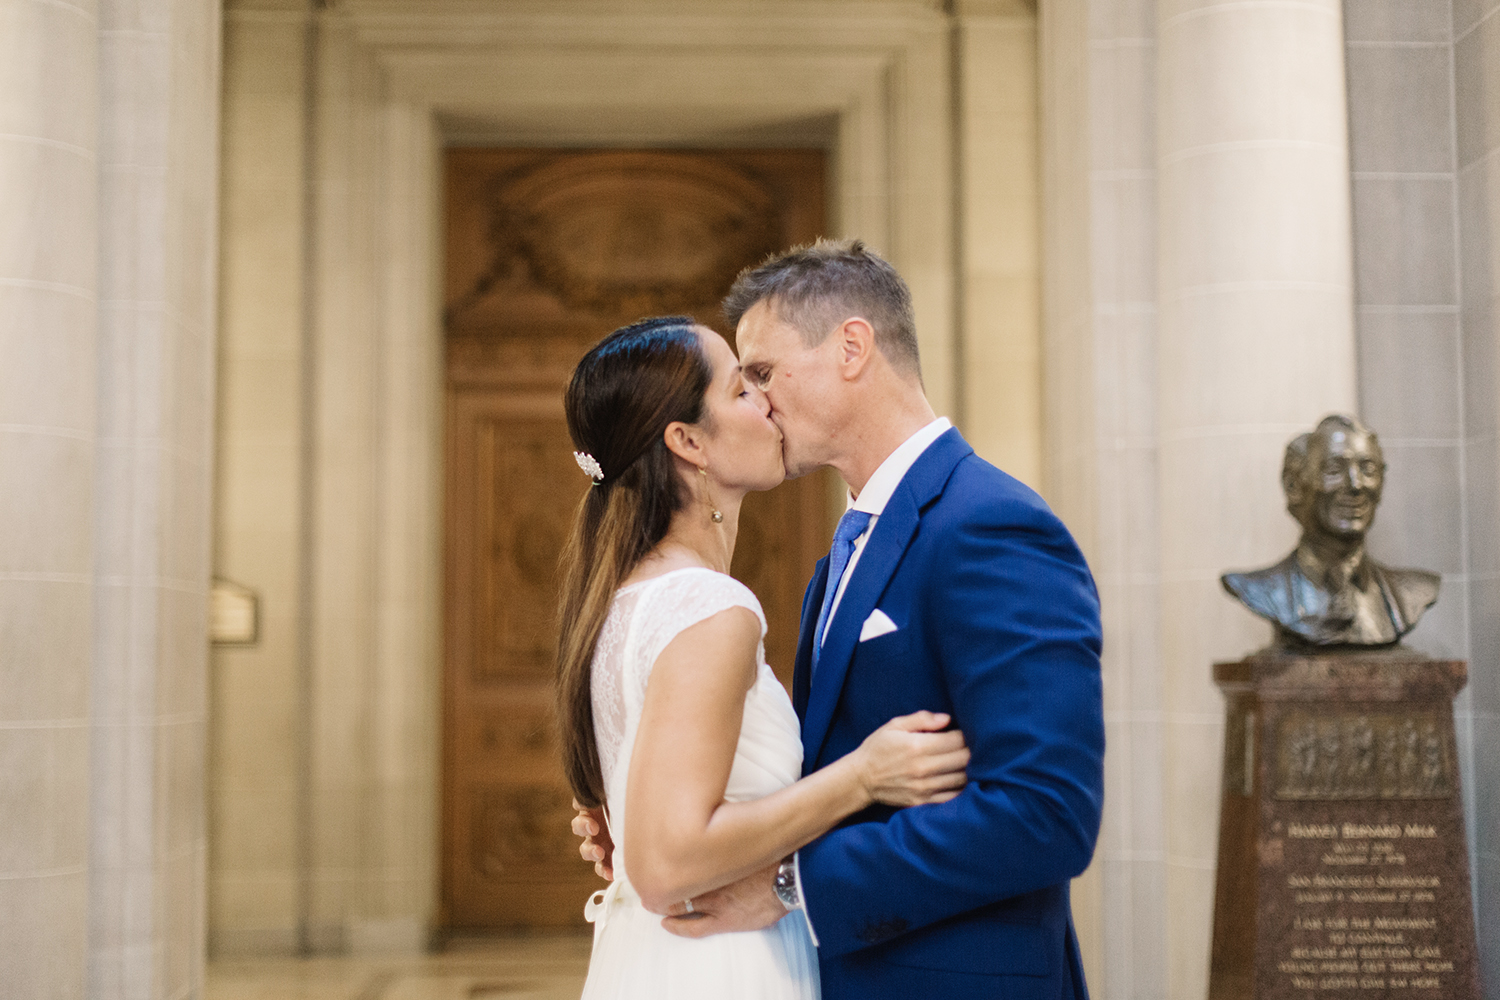 Bride and groom kissing during their wedding in San Francisco City Hall.